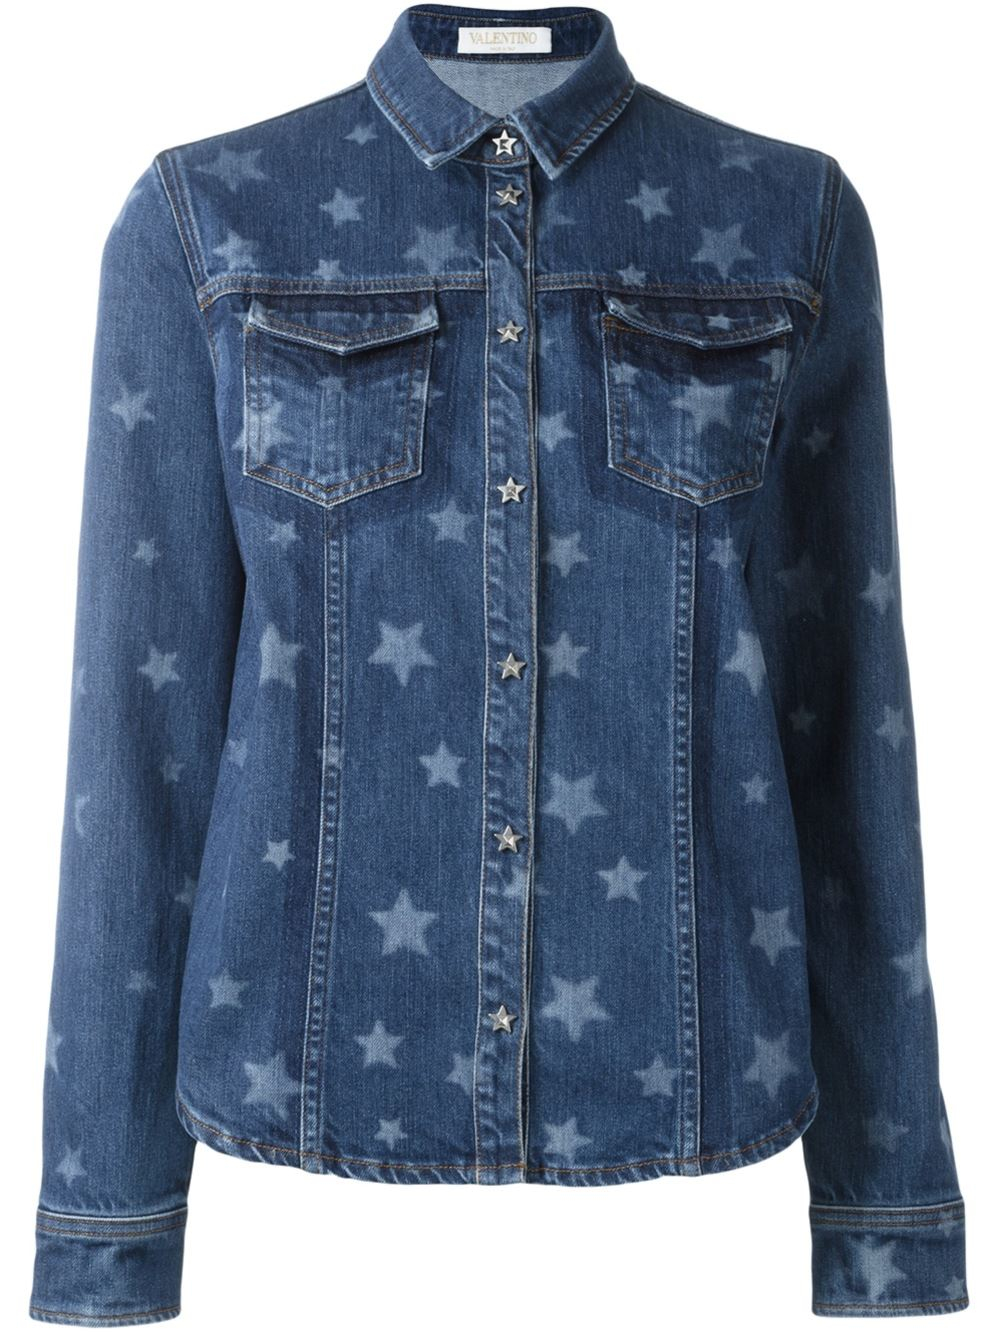 The denim shirt every girl's wardrobe needs: classic styling, high quality denim and pretty press studs. Get it quick, you won't find this anywhere else.